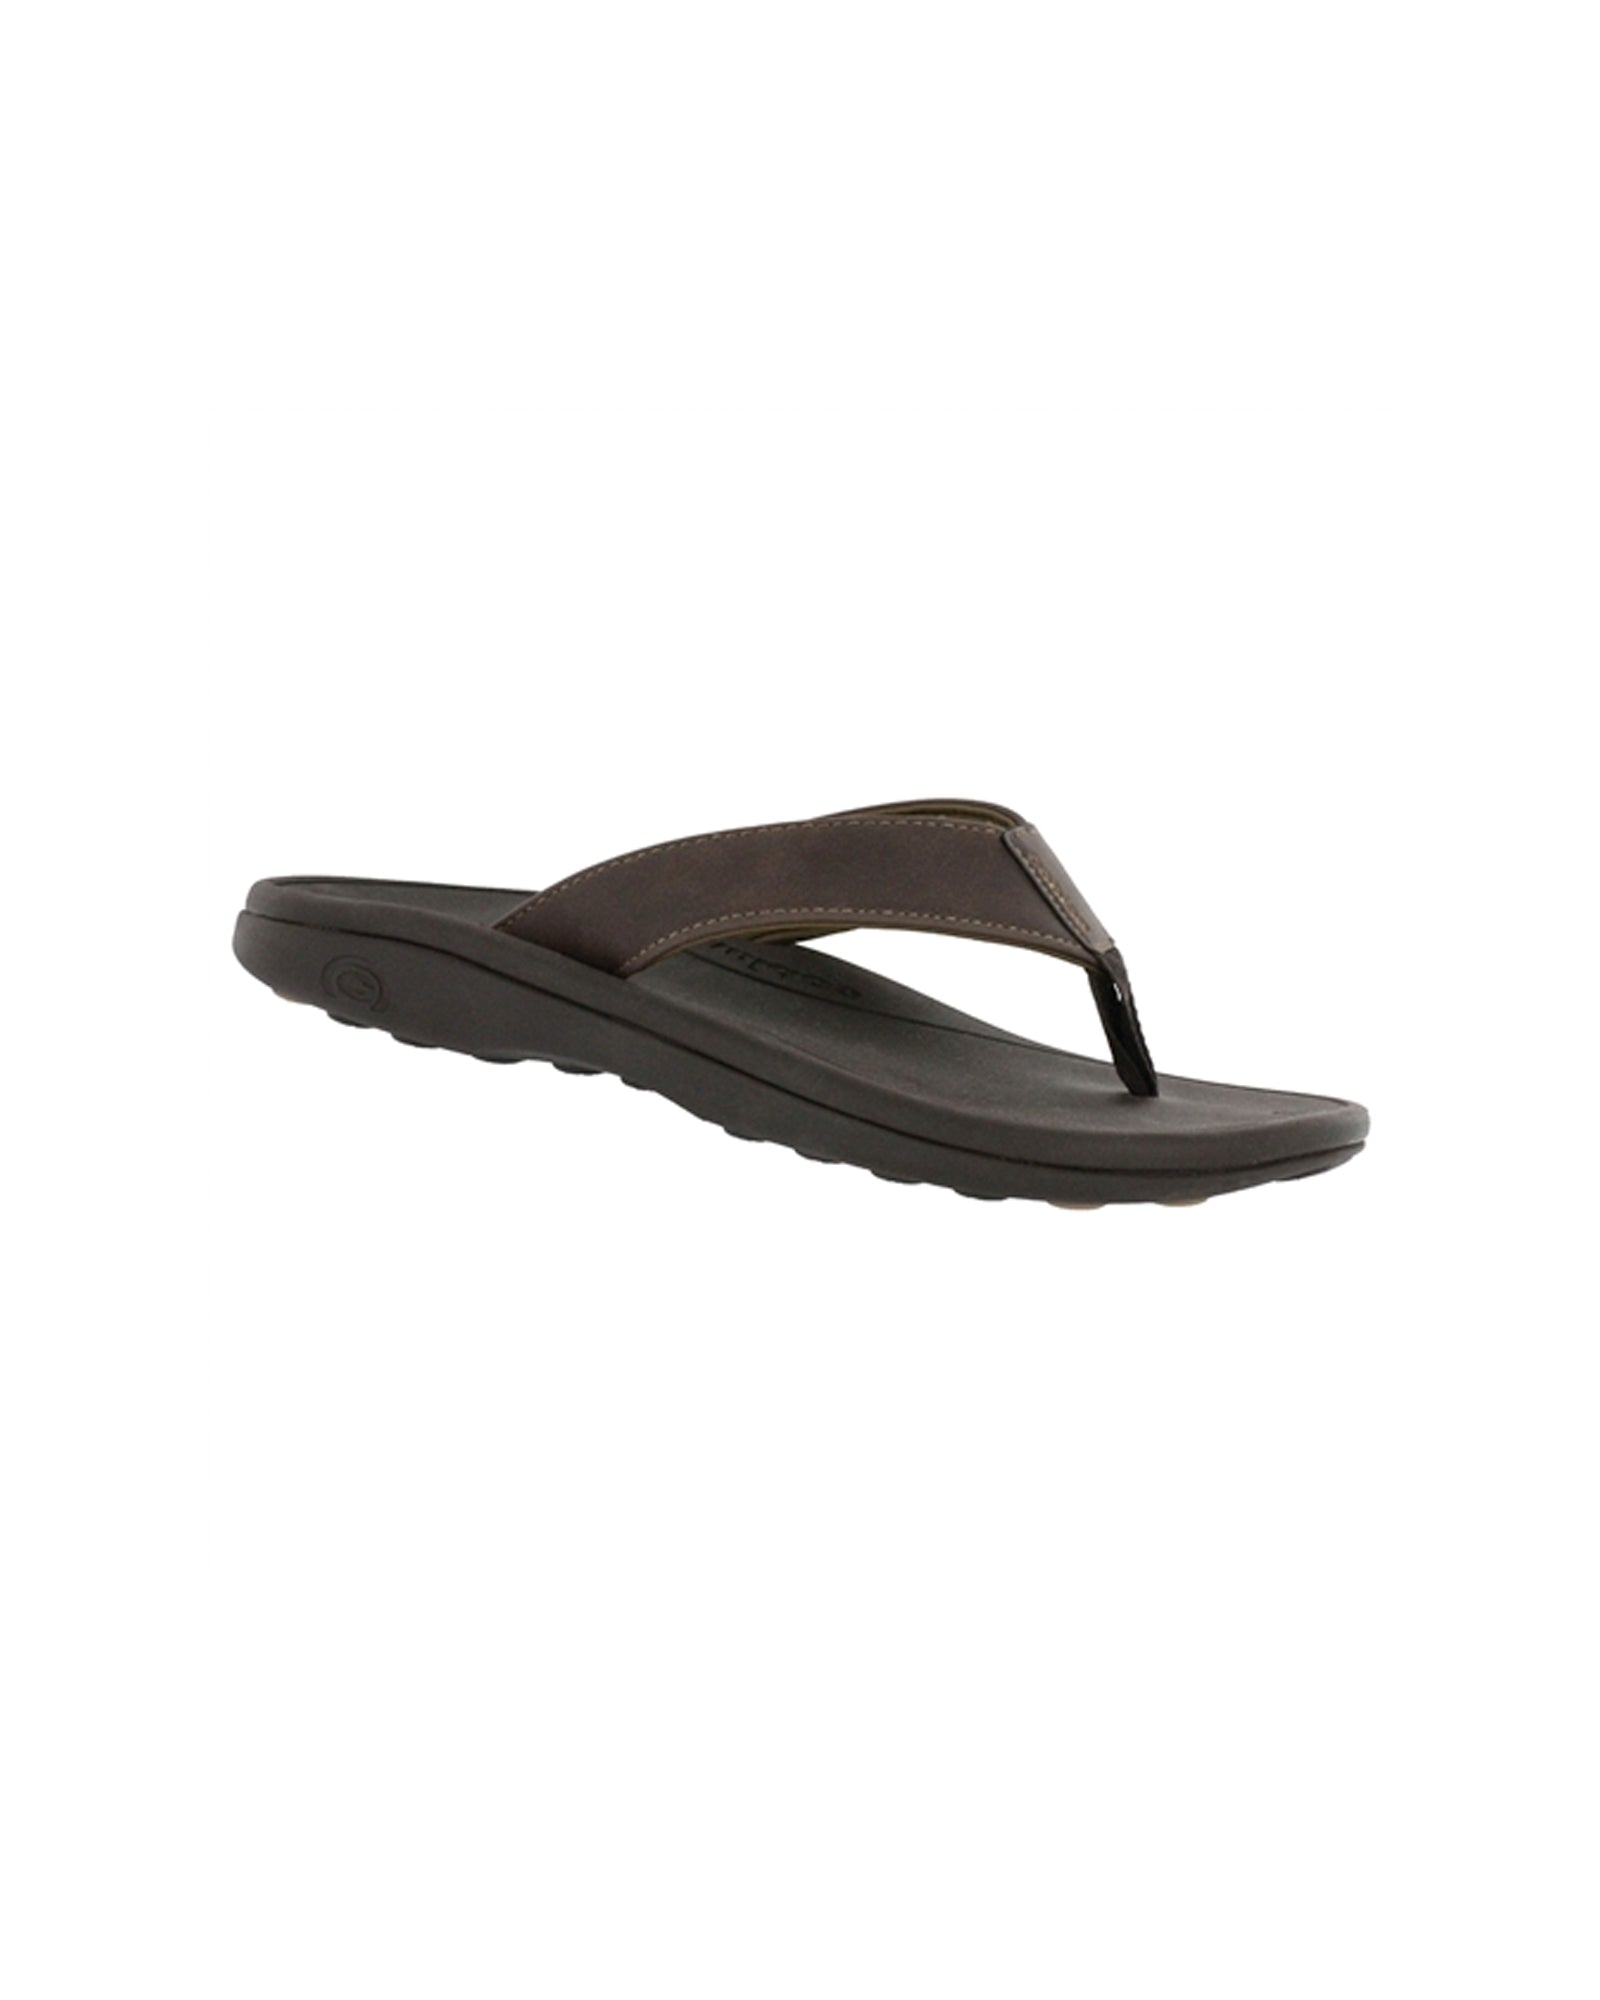 Cobian Sumo Men's Sandals